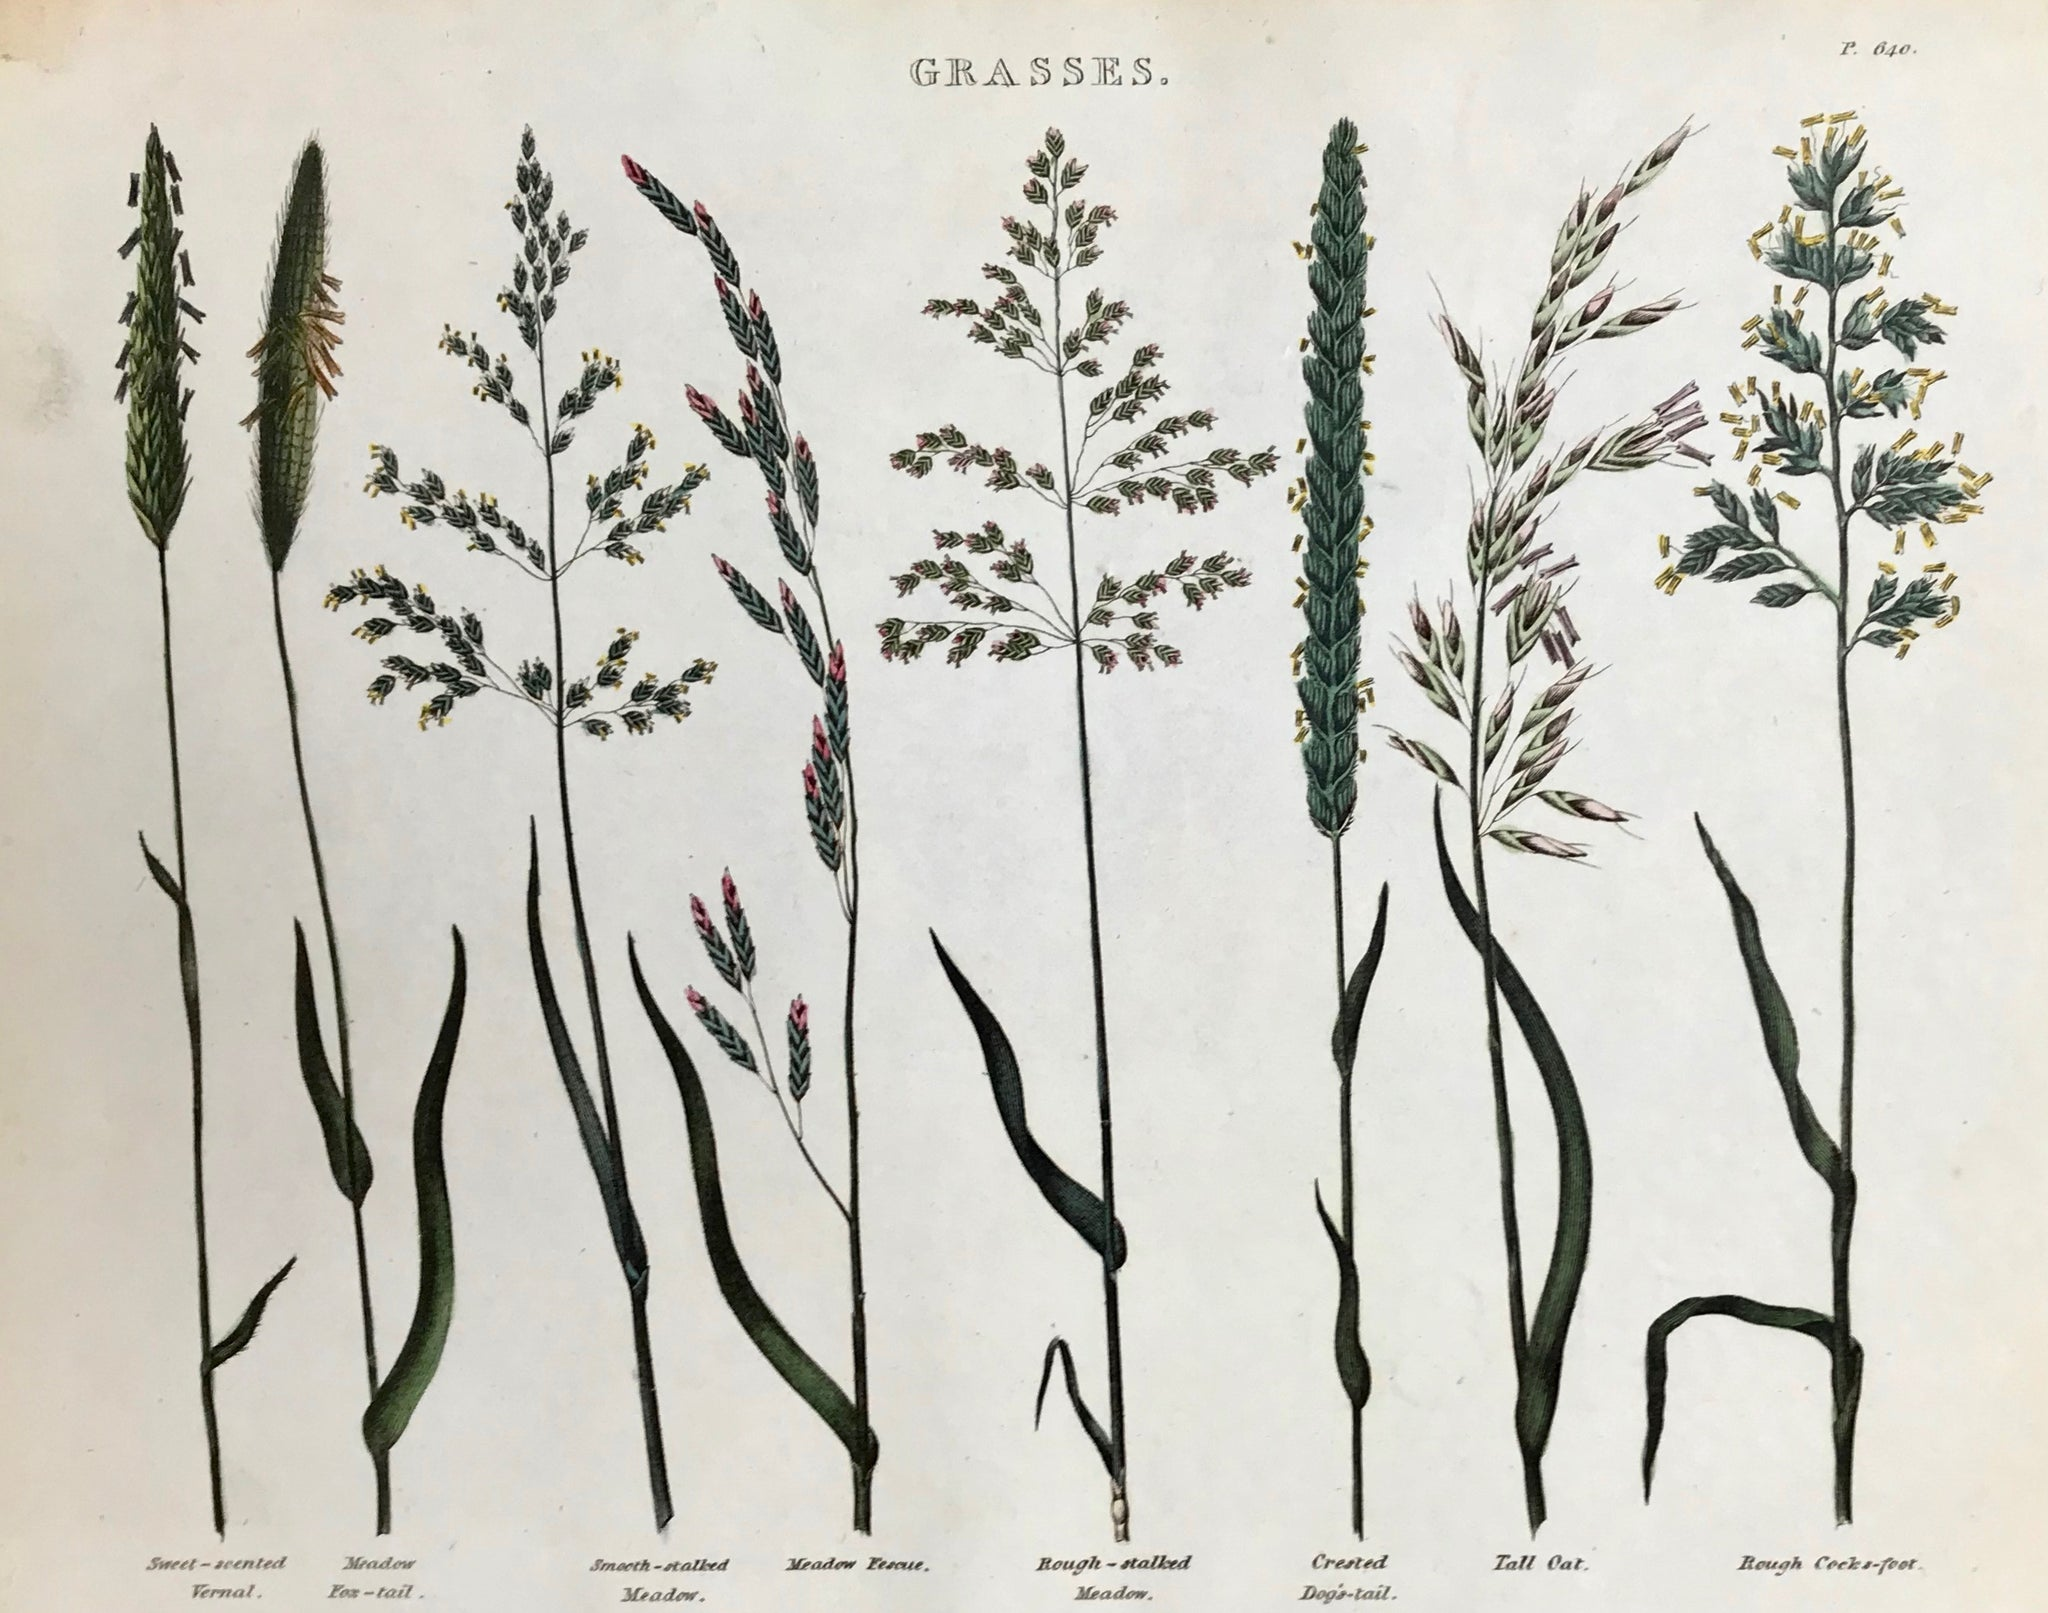 """Grasses""  Sweet-scented Vernal, Meadow Fox-Tail, Smooth-stalked Meadow, Meadow Fescue, Rough-stalked Meadow, Crested Dog's Tail, Tall Oat, Rough Cocks-foot.  Light browning in upper left margin corner.   Antique Botanical Prints from ""The Universal Herbal"" by Thomas Green.  The complete title of this accurately and absolutely delightfully hand-colored work is: ""The Universal Herbal"", or Botanical, Medical, and Agricultural Dictionary,"